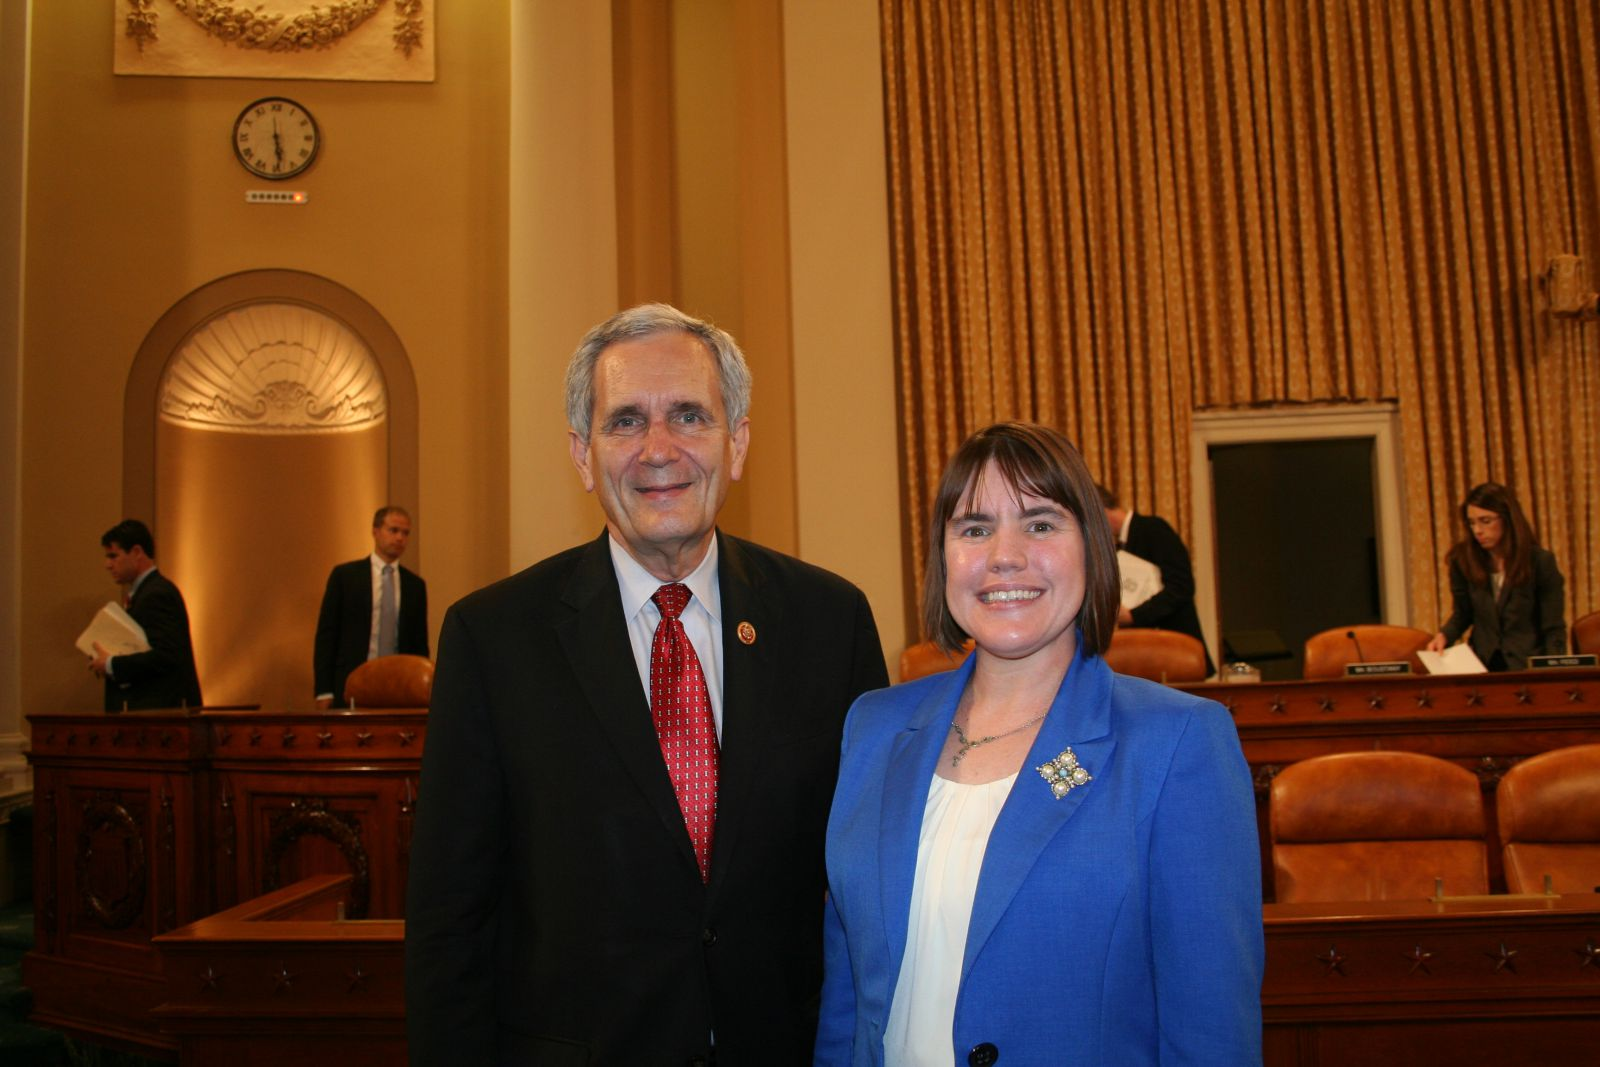 Congressman Lloyd Doggett (D-TX) and Tara Smith